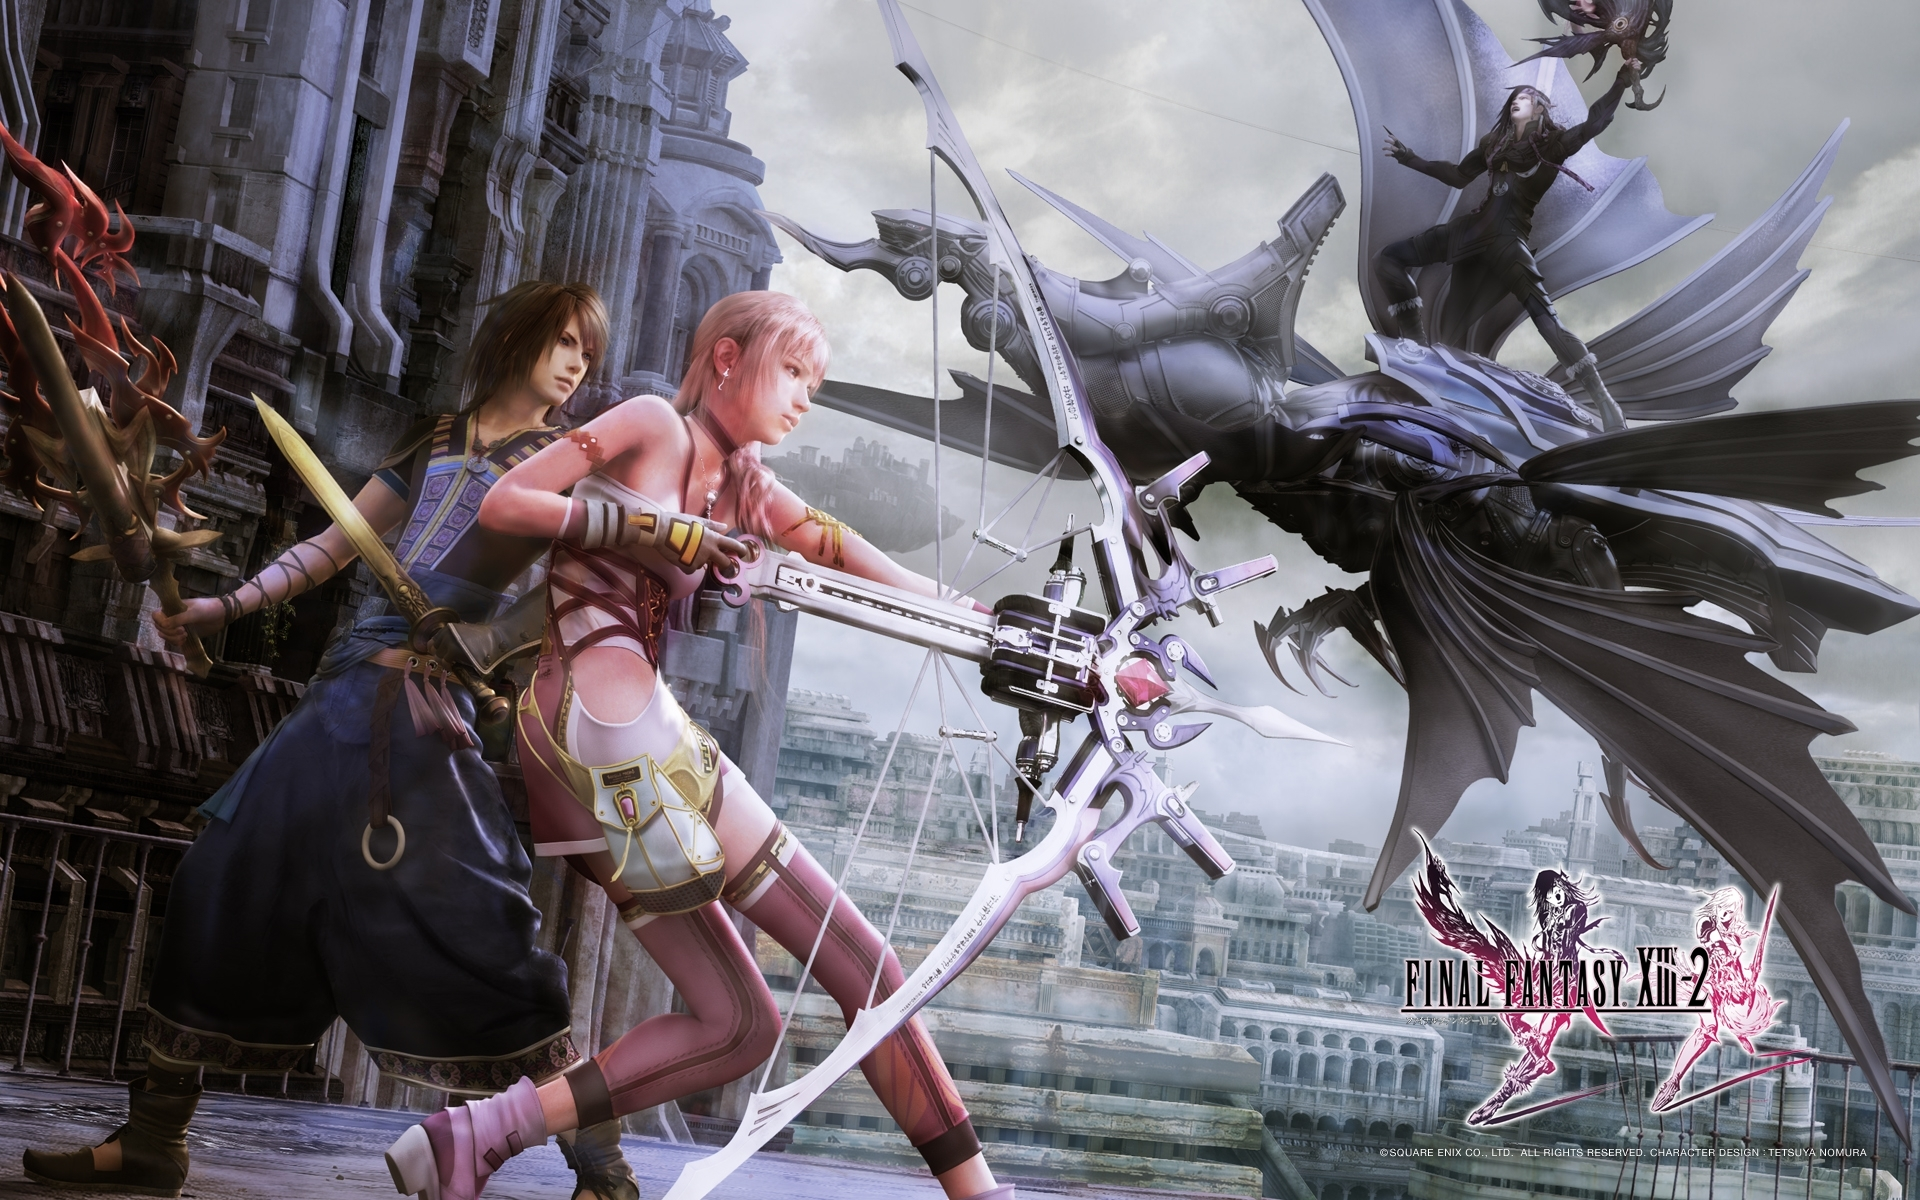 final fantasy xiii-2 wallpapers - lightning, serah, noel, mog